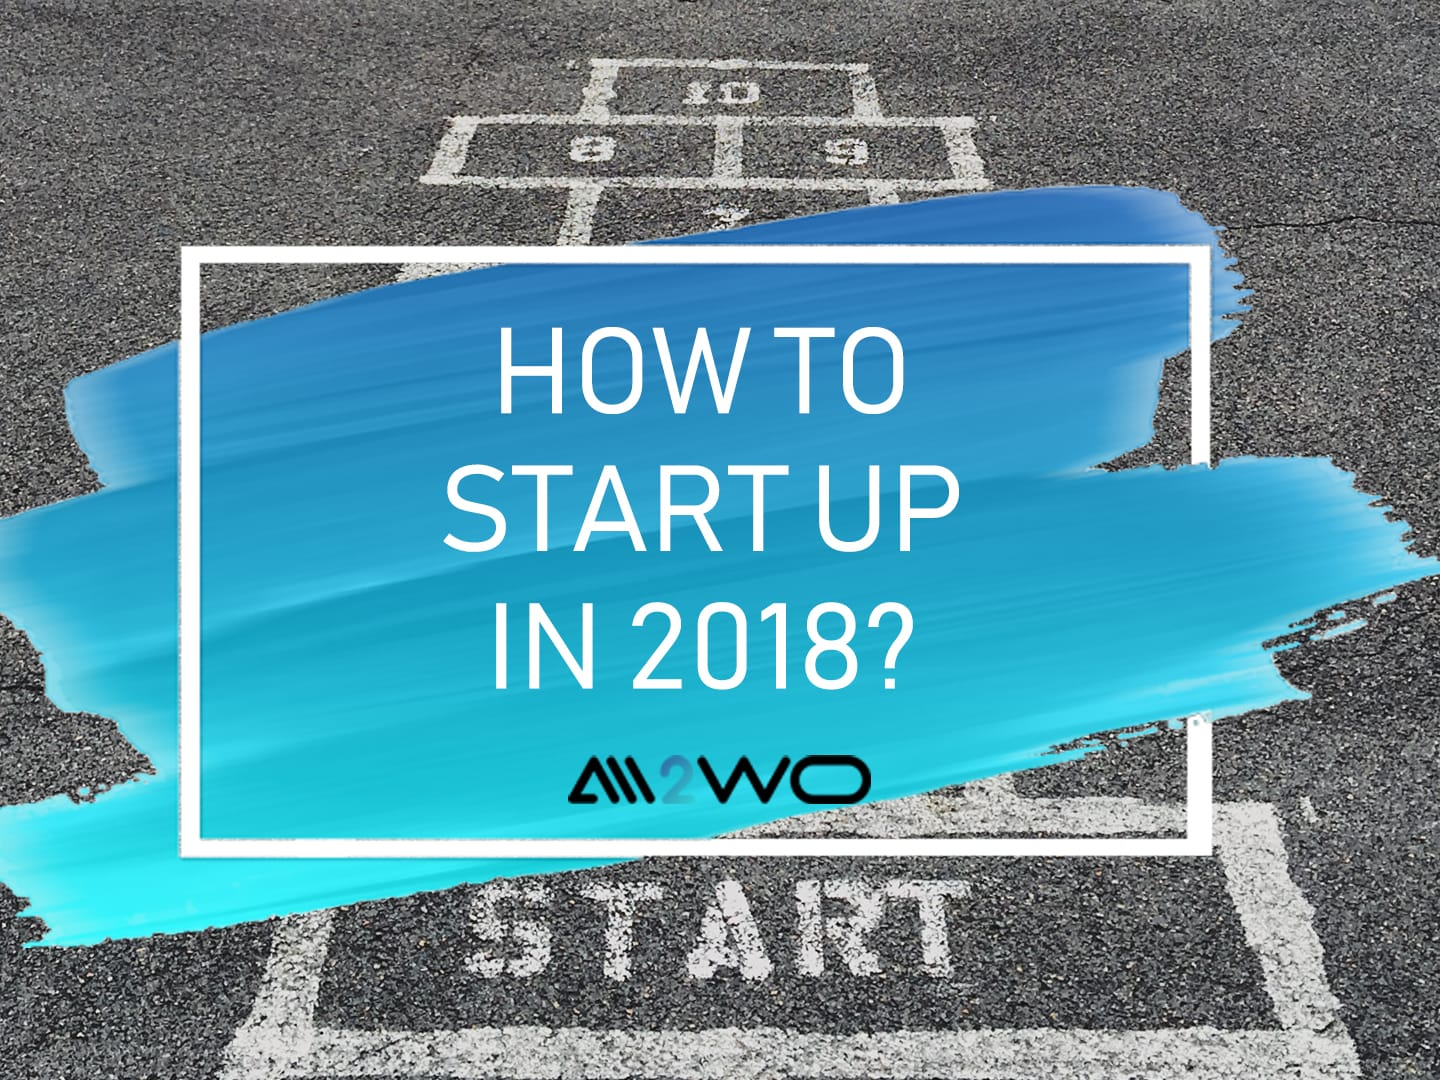 how-to-start-up-dropshipping-business-expertly-in-2018